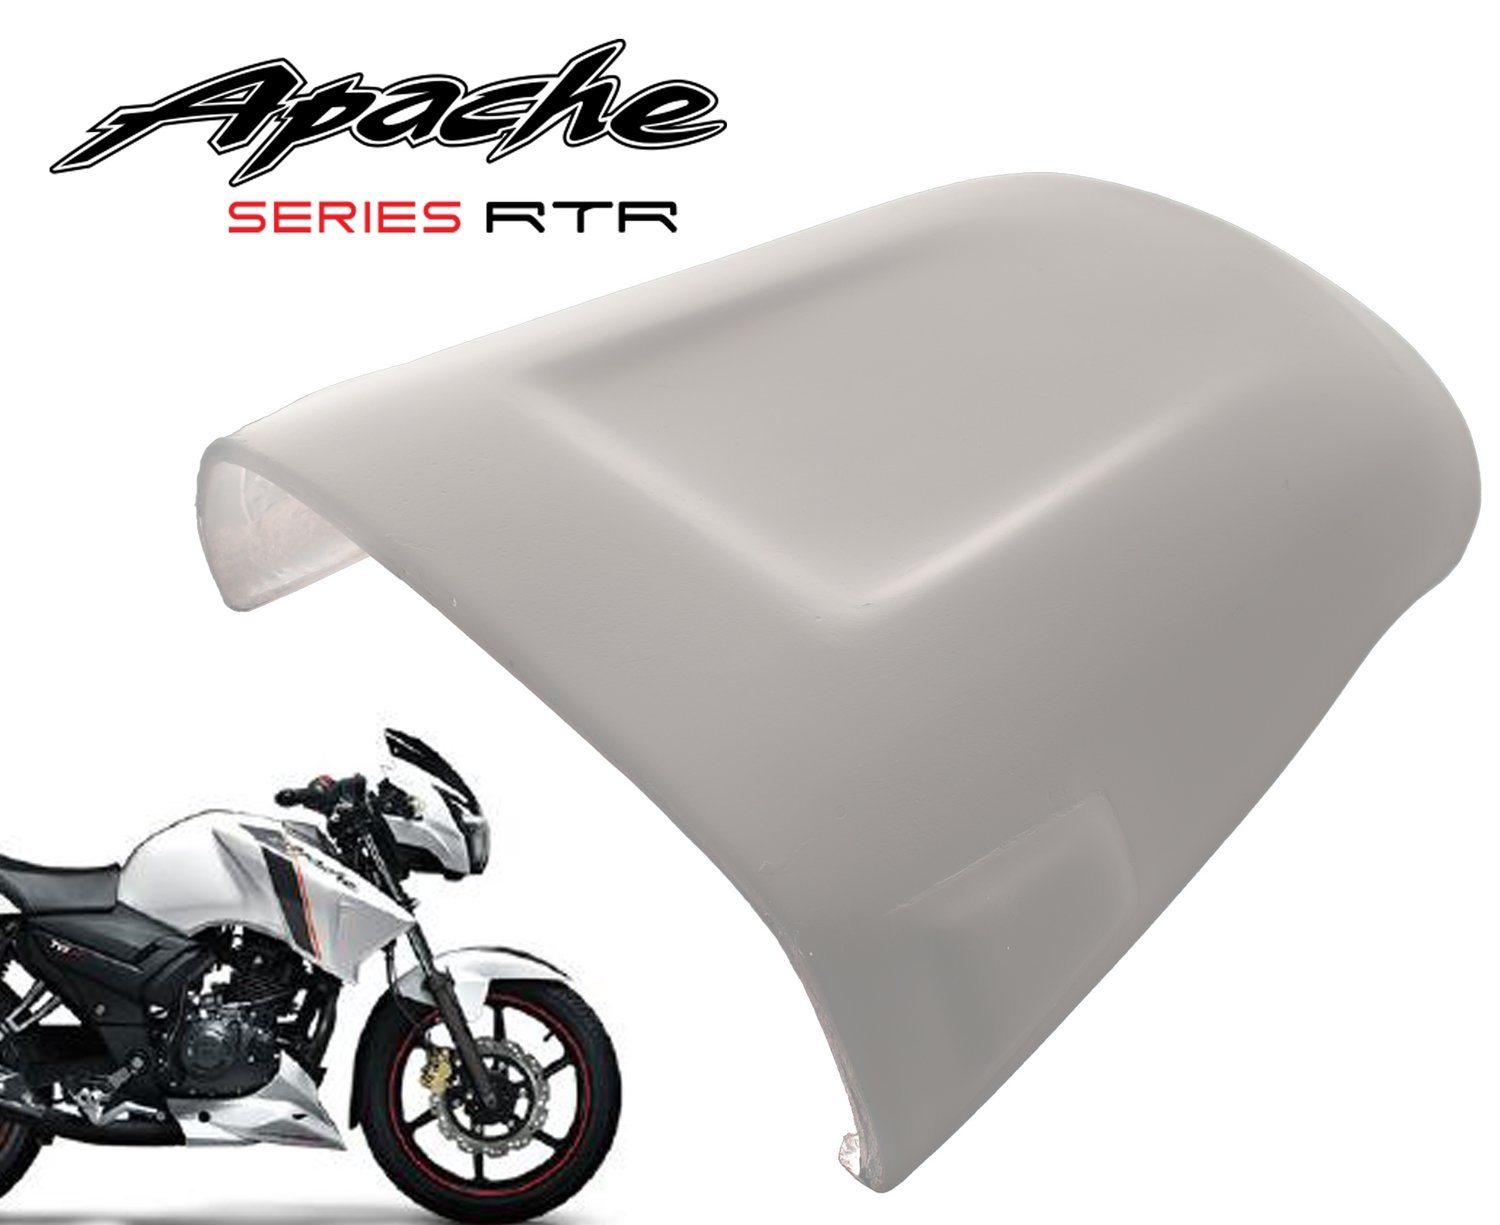 Dragster Pillion Seat Cowl for TVS Apache 160/180 - Plug N Play - Pearl White